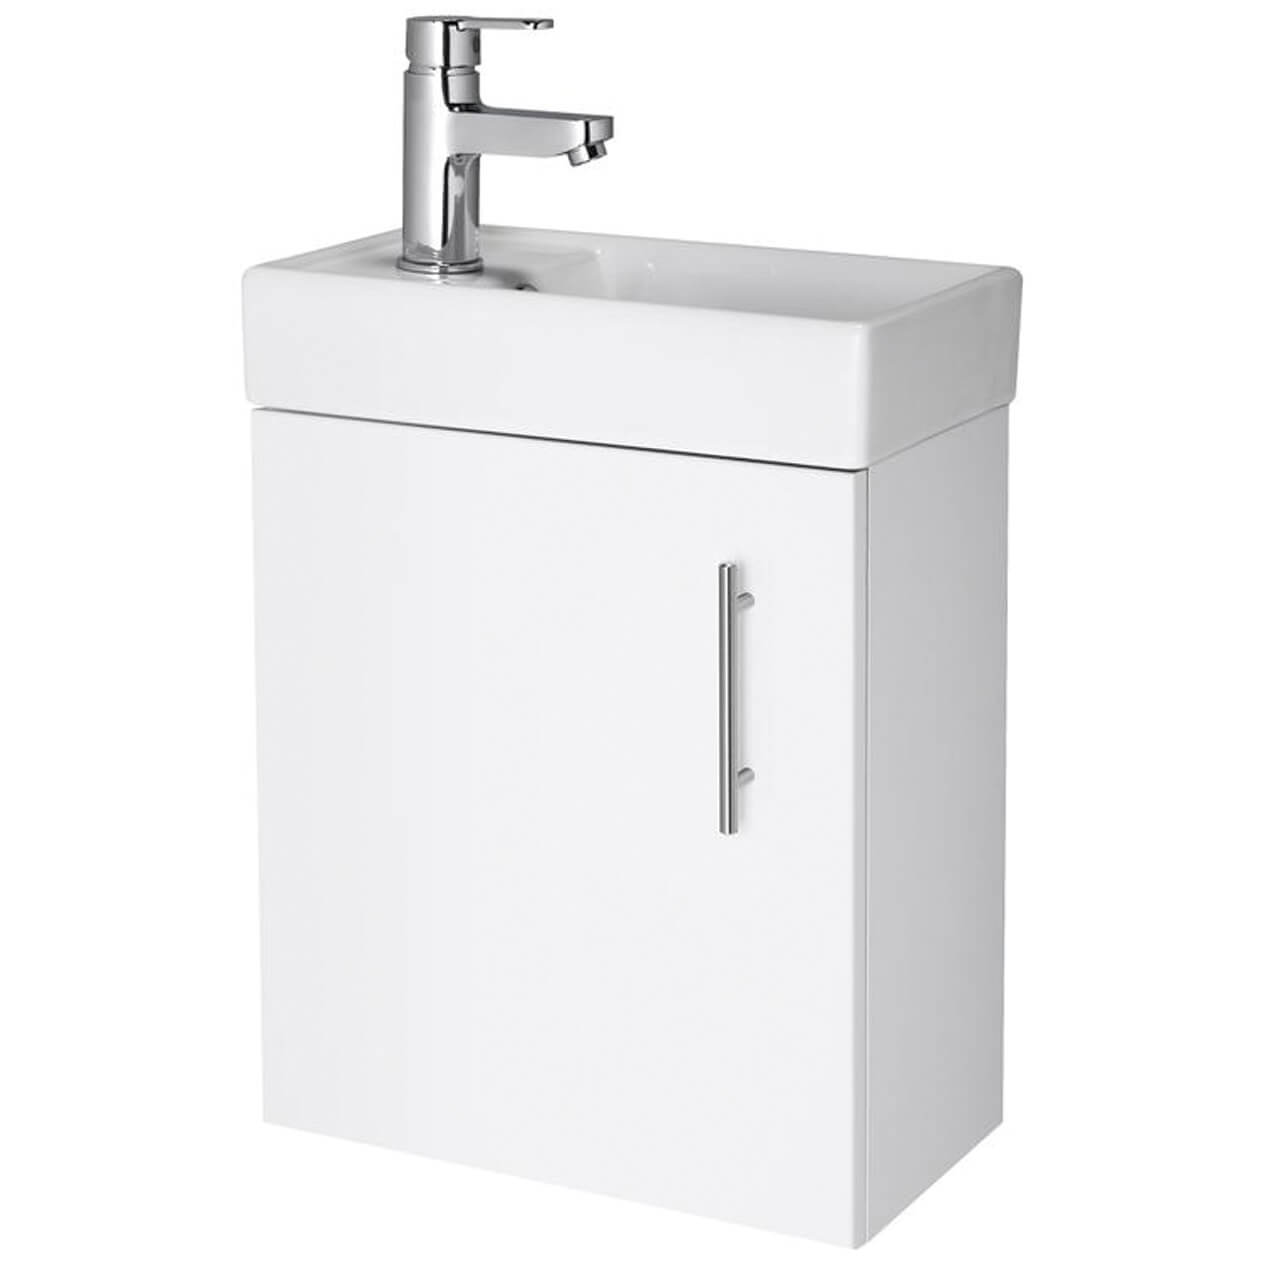 Premier Vault Gloss White 400mm Single Door Wall Hung Unit With Basin Min012